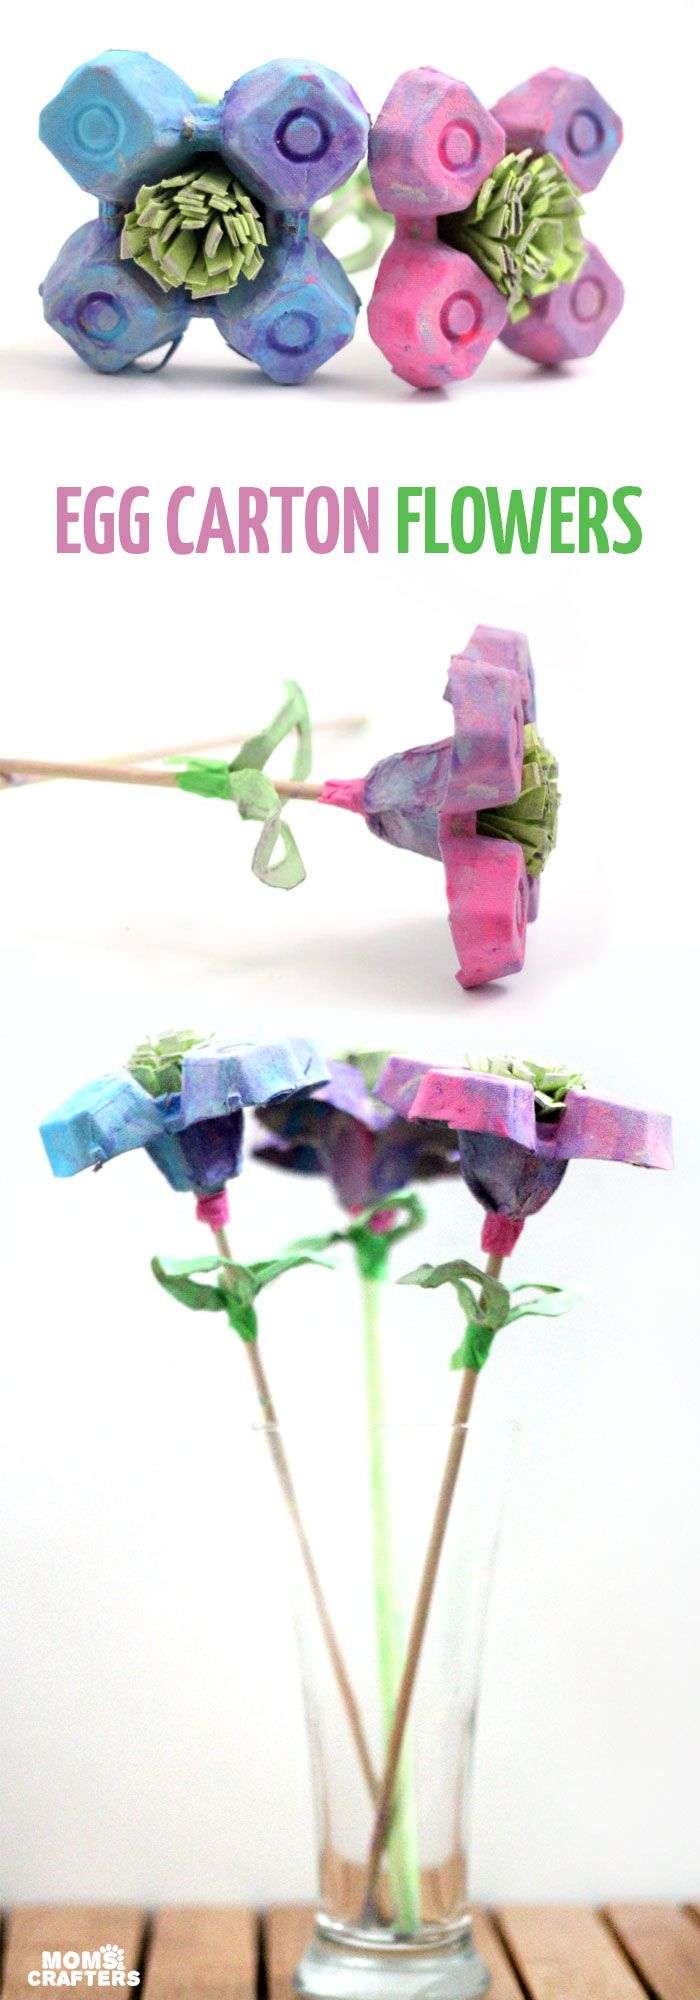 Egg carton flowers- beautiful Spring craft for kids